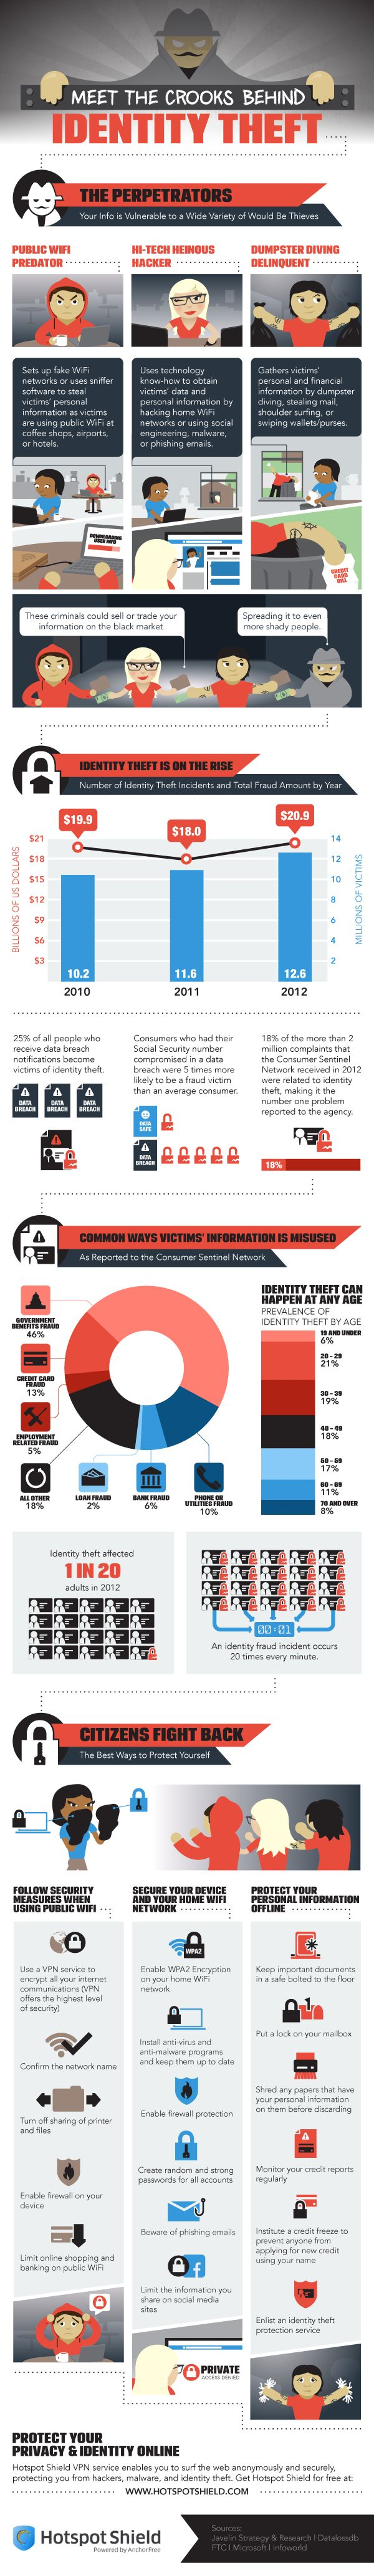 Meet The Crooks Behind Identity Theft #Infographic #Hacker